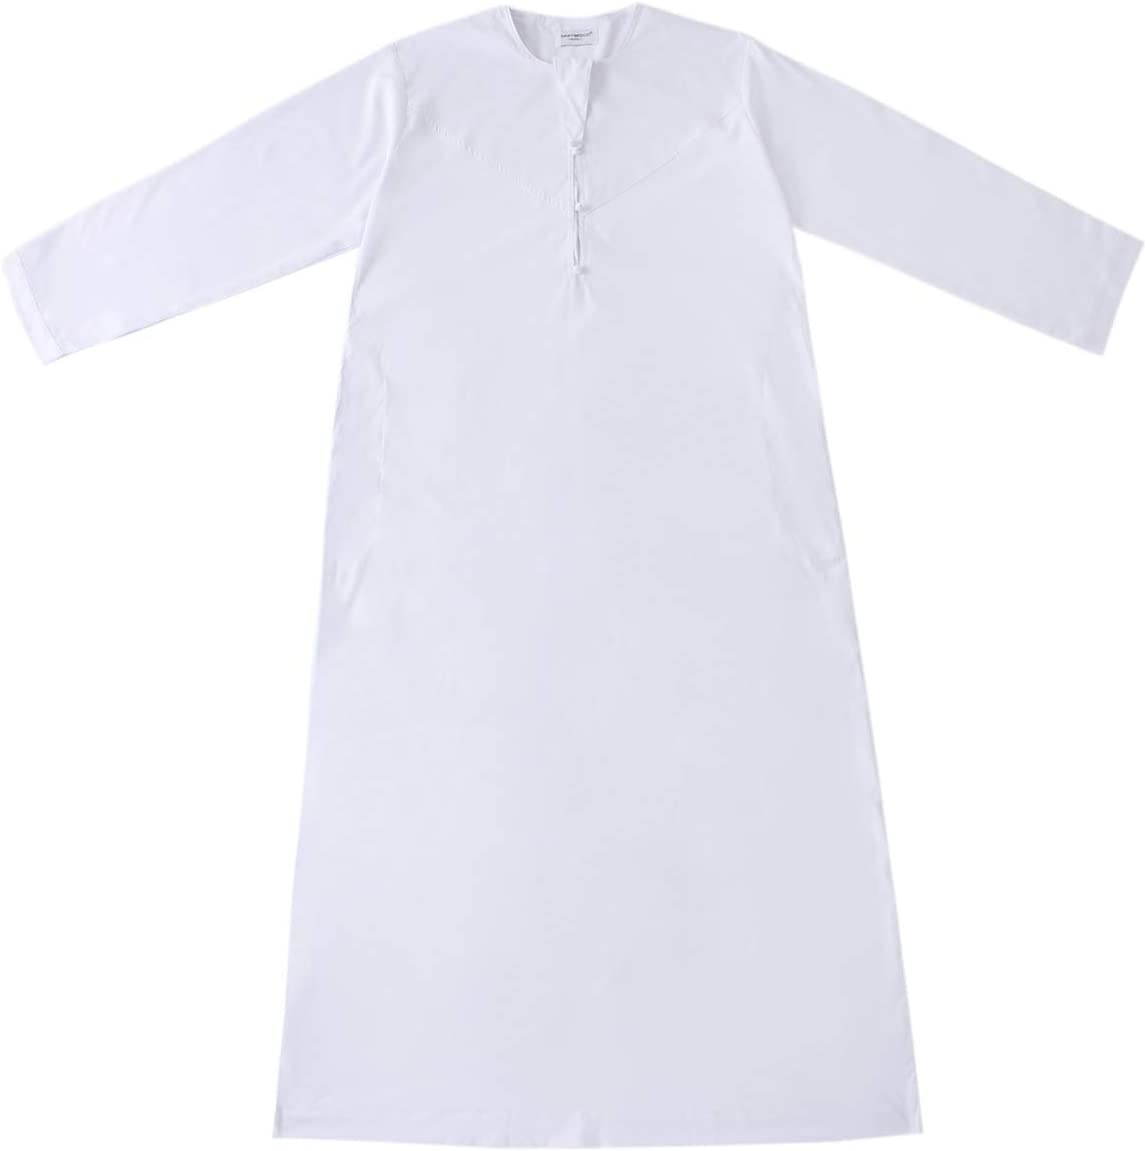 FENICAL Muslim Robe Long Sleeve Robe Arab Muslim Robe Middle Eastern Robe Clothes for Men Male (White Size L)